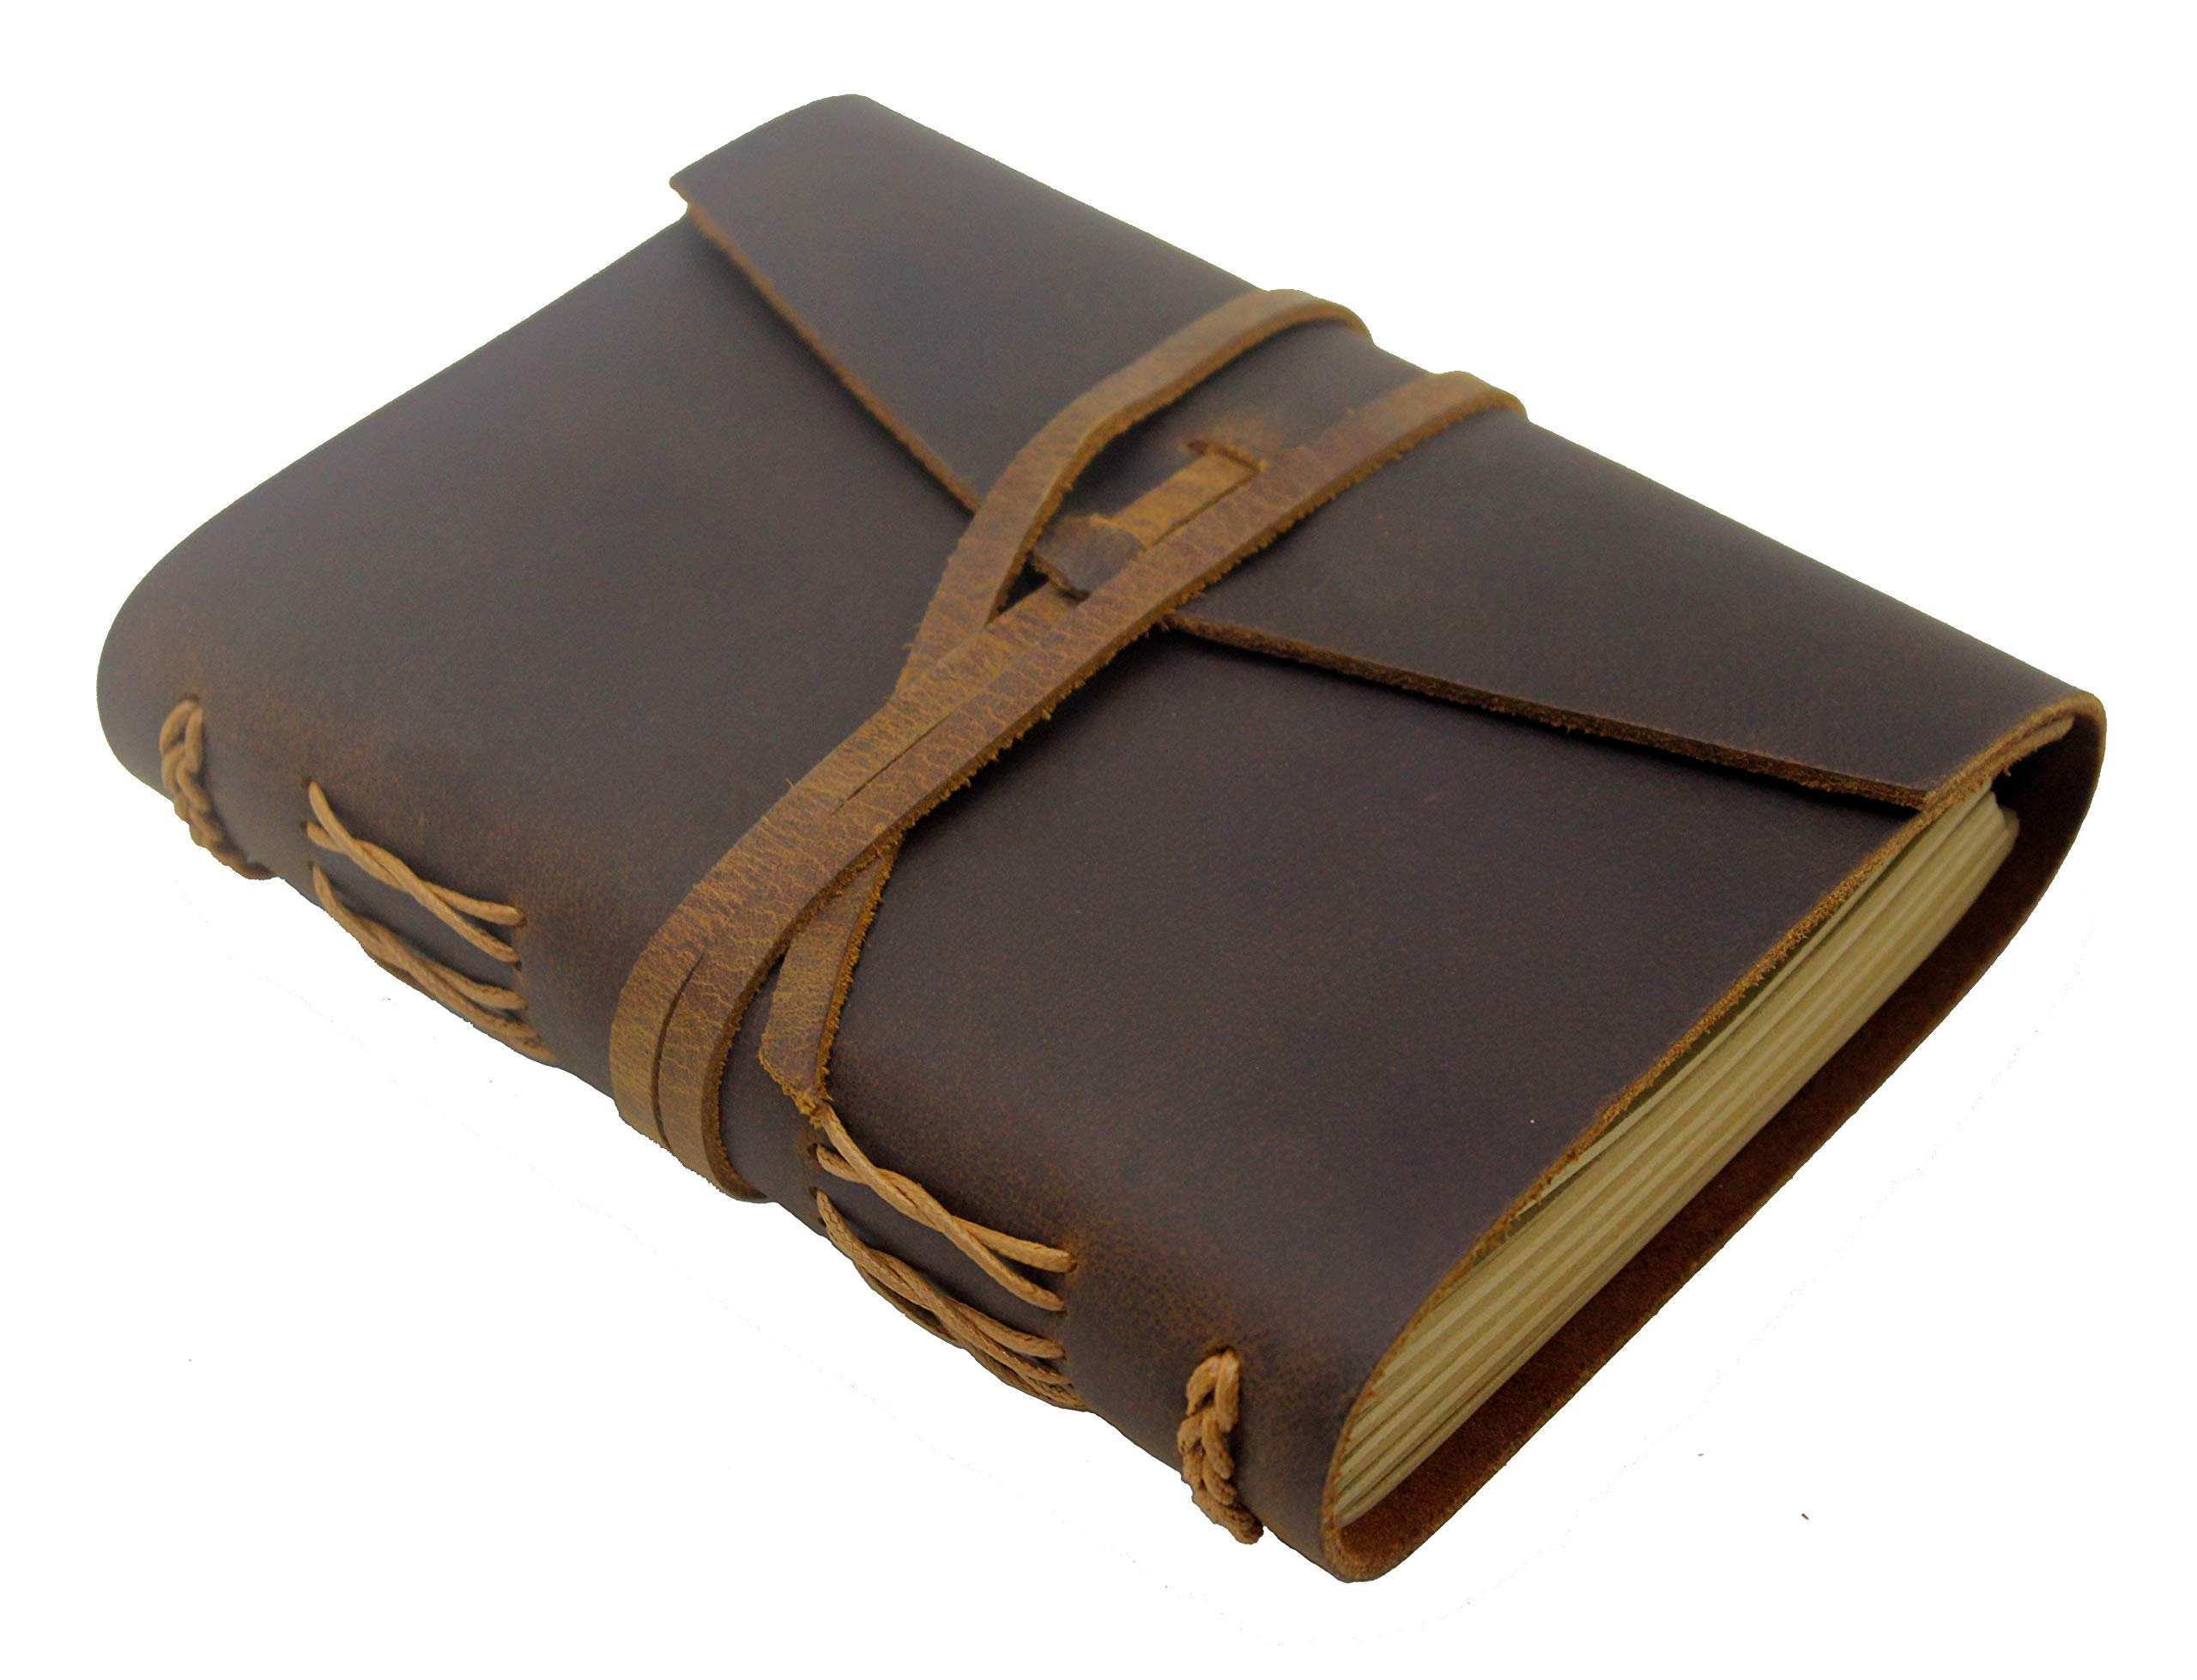 Leather Journal, 100% Handmade Genuine Leather Bound Notebook - 100GSM Lined Kraft Paper 288 Pages (144 Sheets) Gifts for Men & Women,7×5 in,Rustic Brown